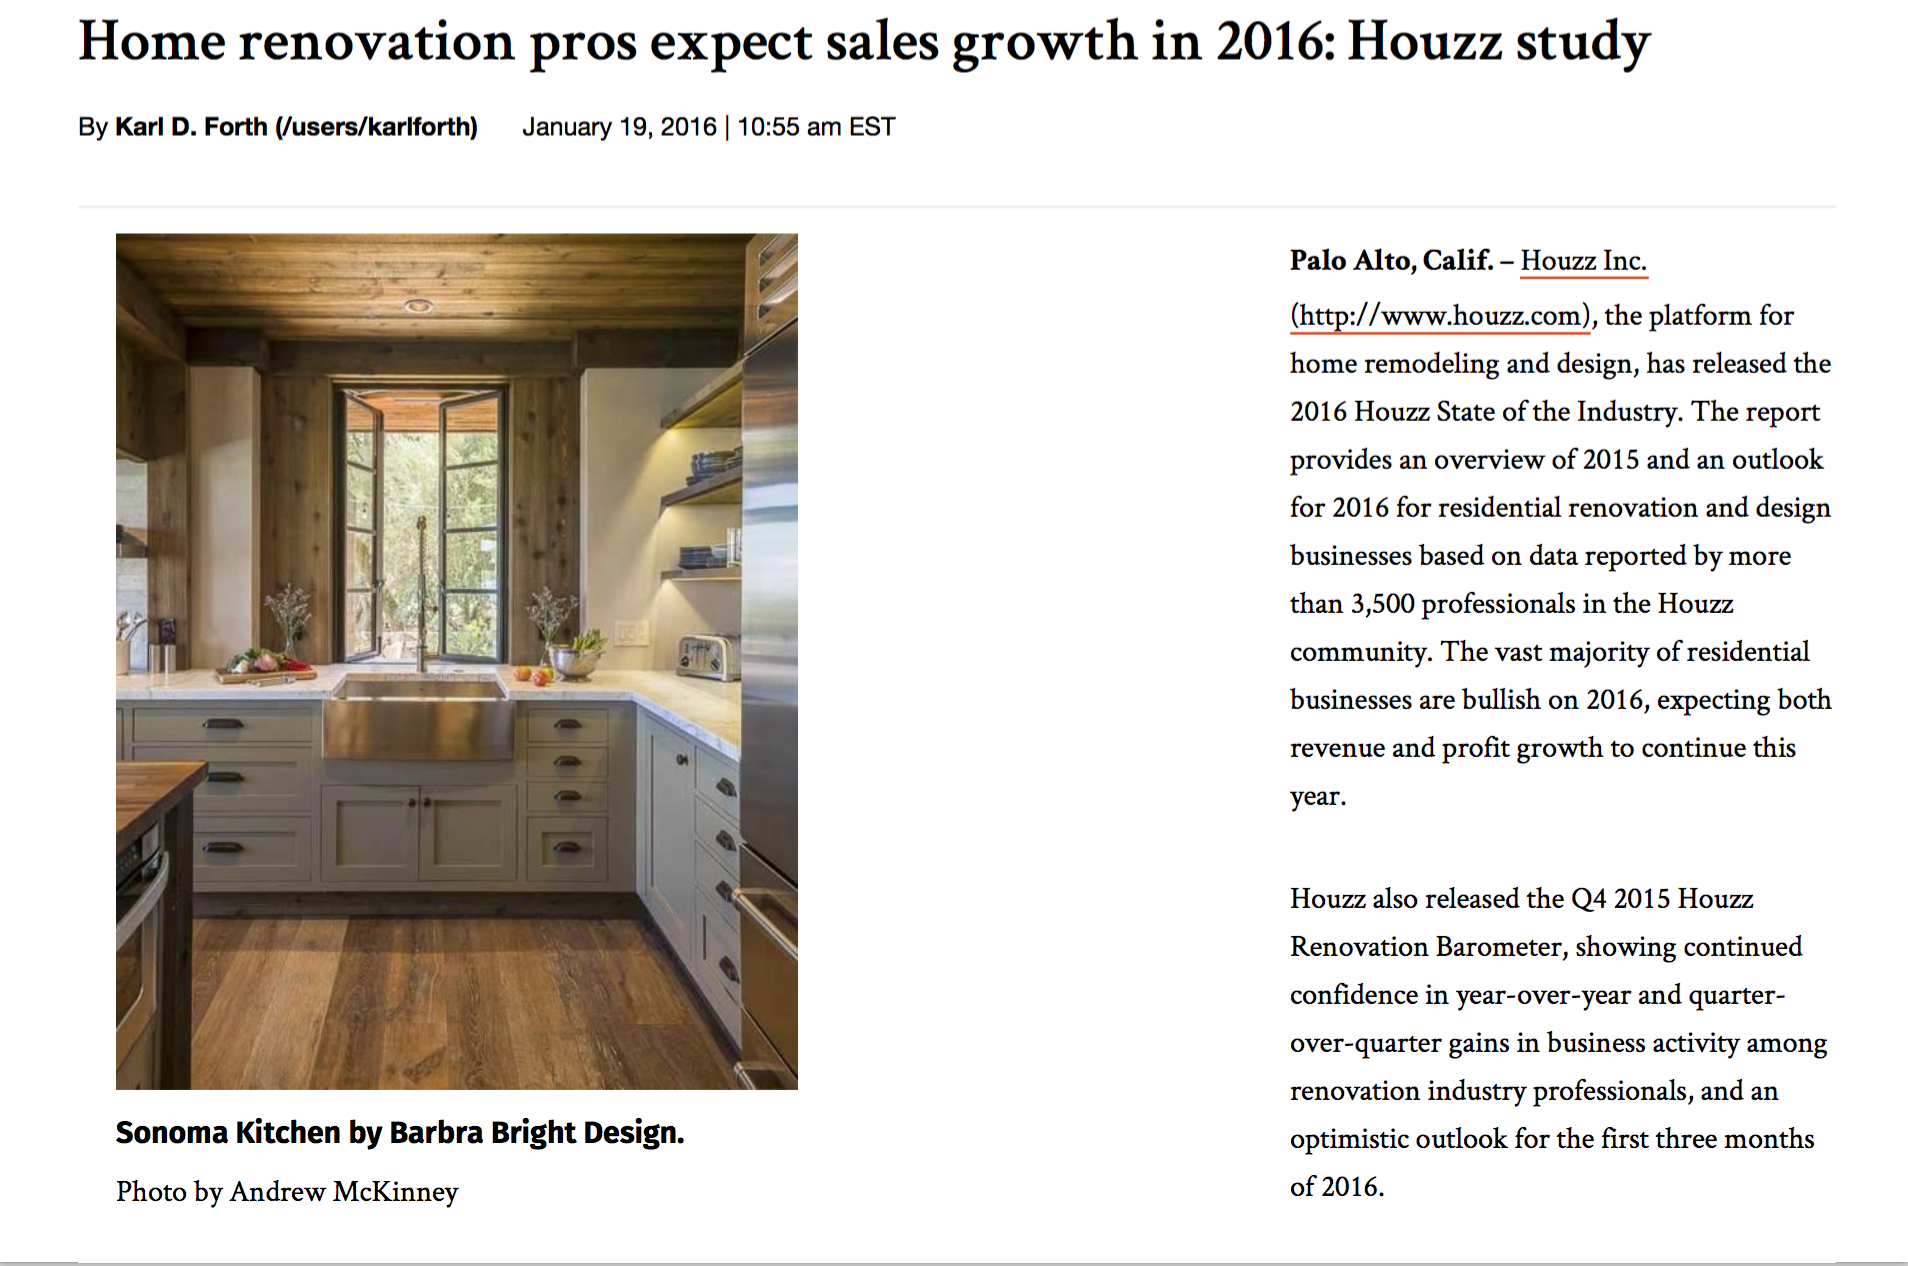 Houzz 2016 Home Renovation Growth